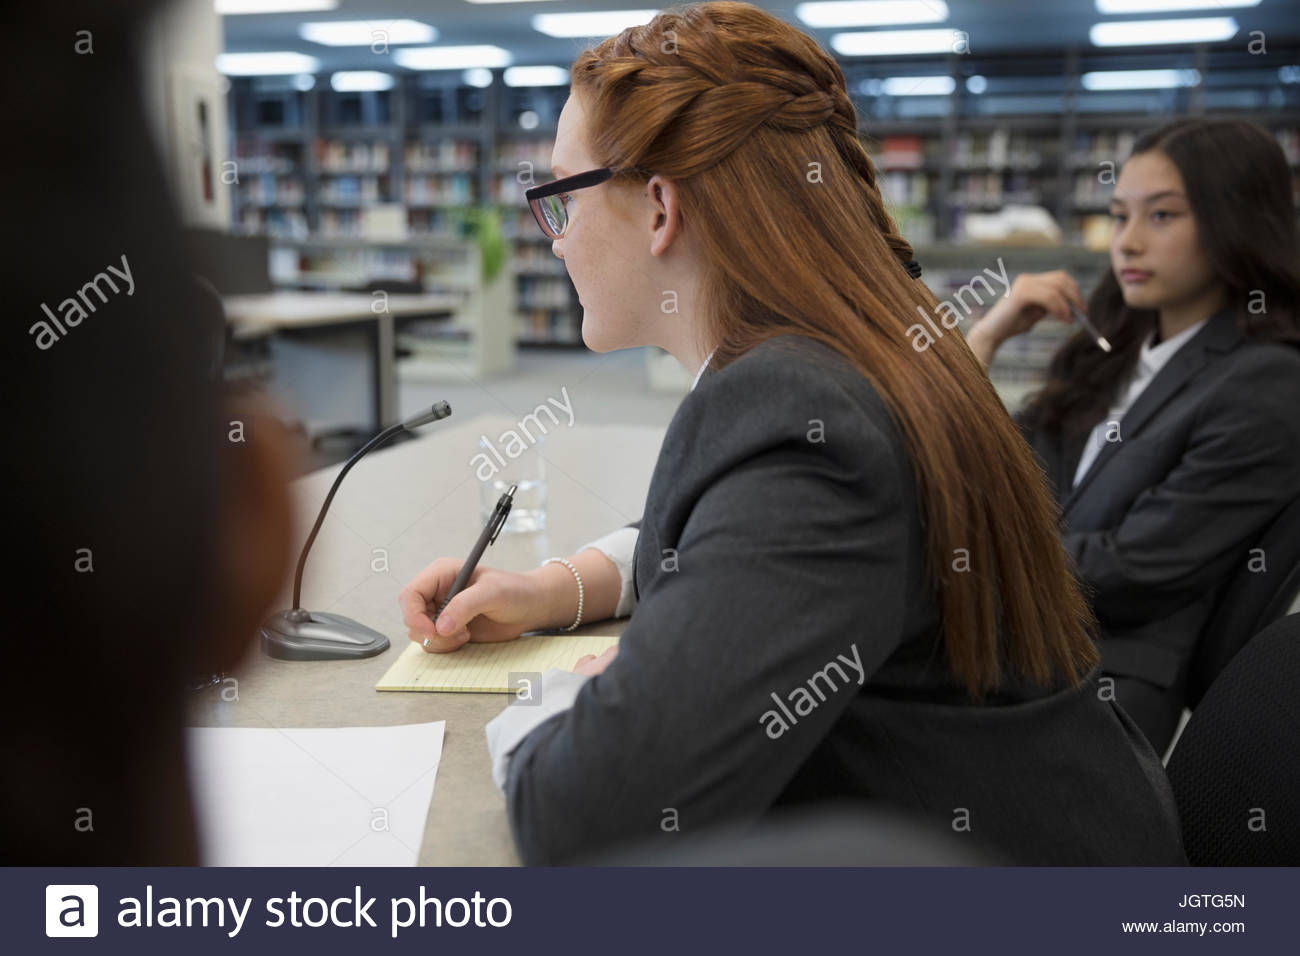 Girl middle school student talking in debate club library - Stock Image